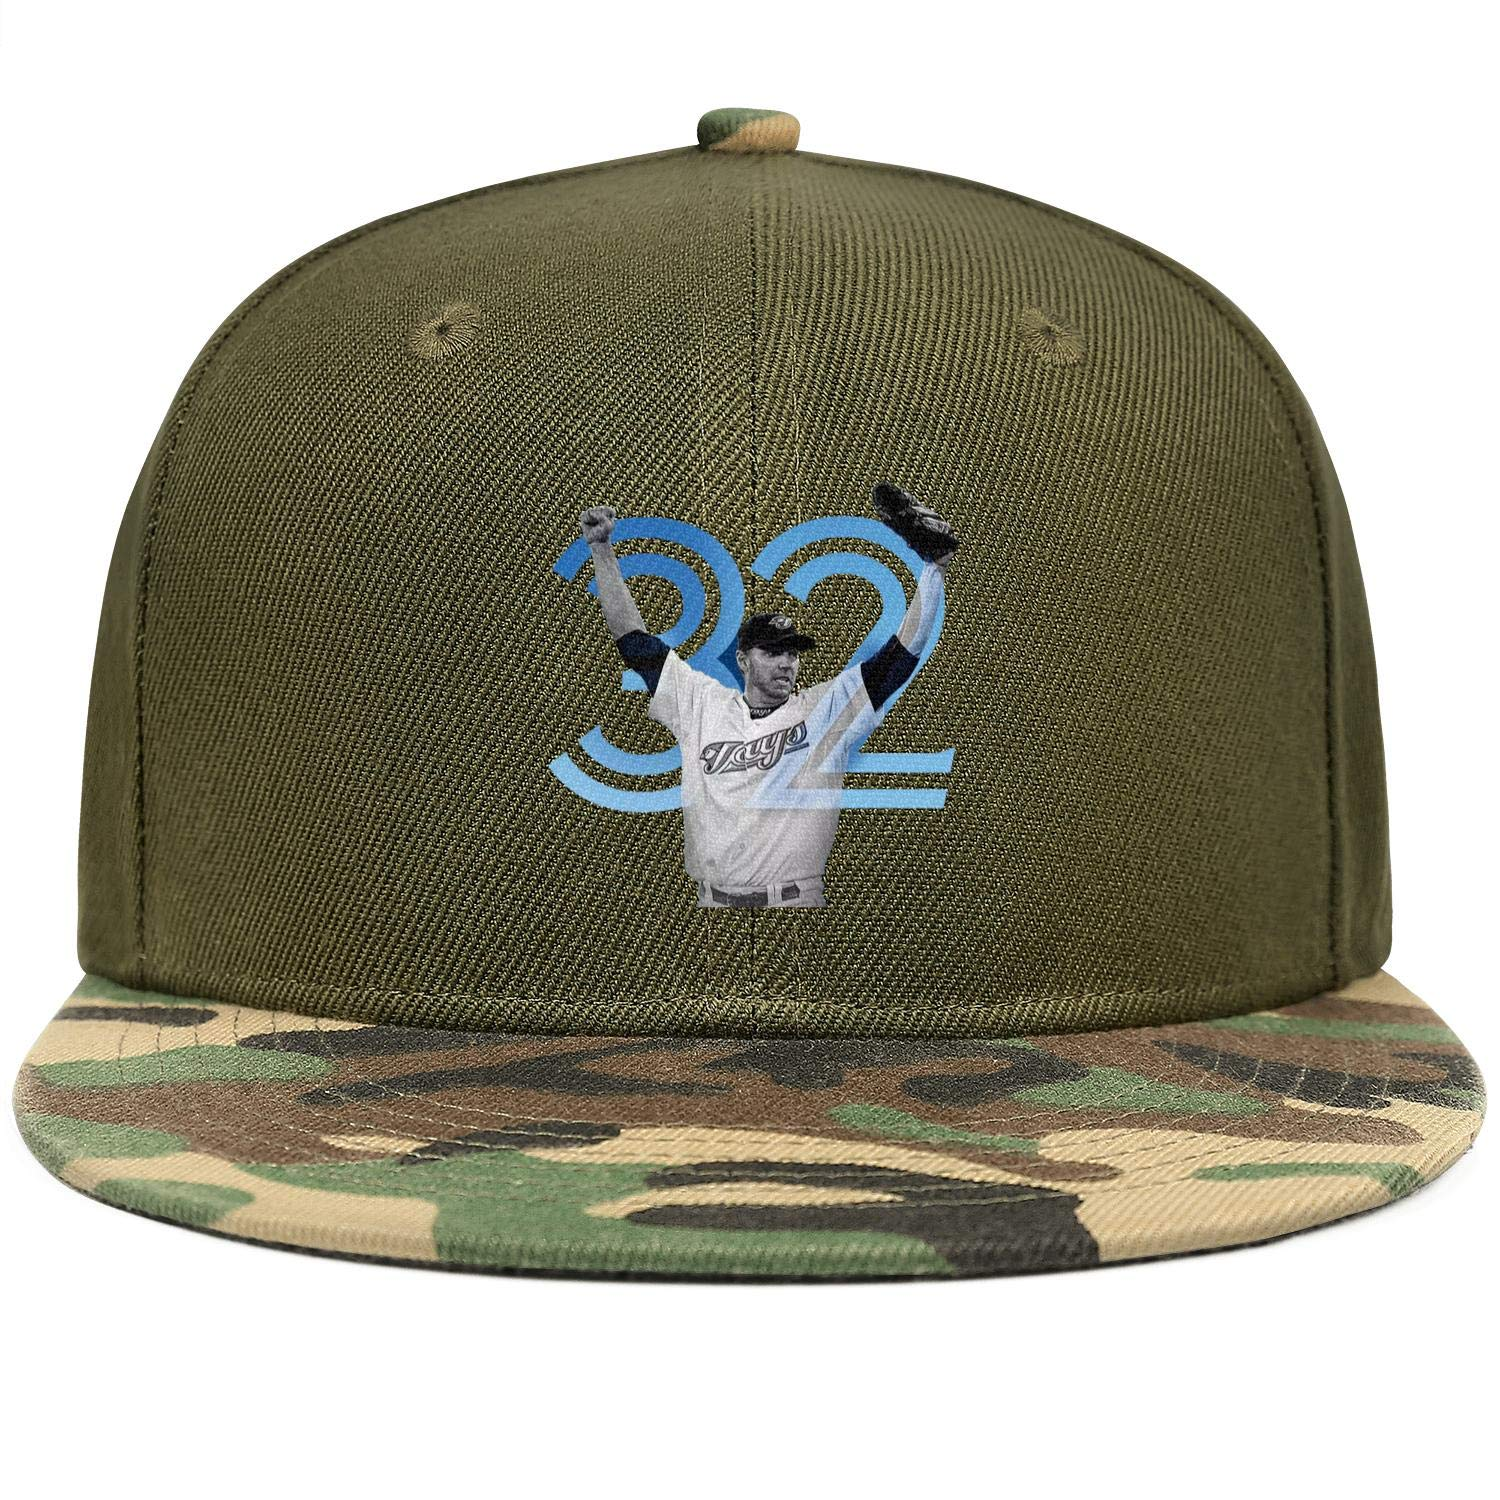 FengY Unisex Roy Halladay32 Adjustablecowboy Hat Outdoor Trucker Cap Snapback Hat